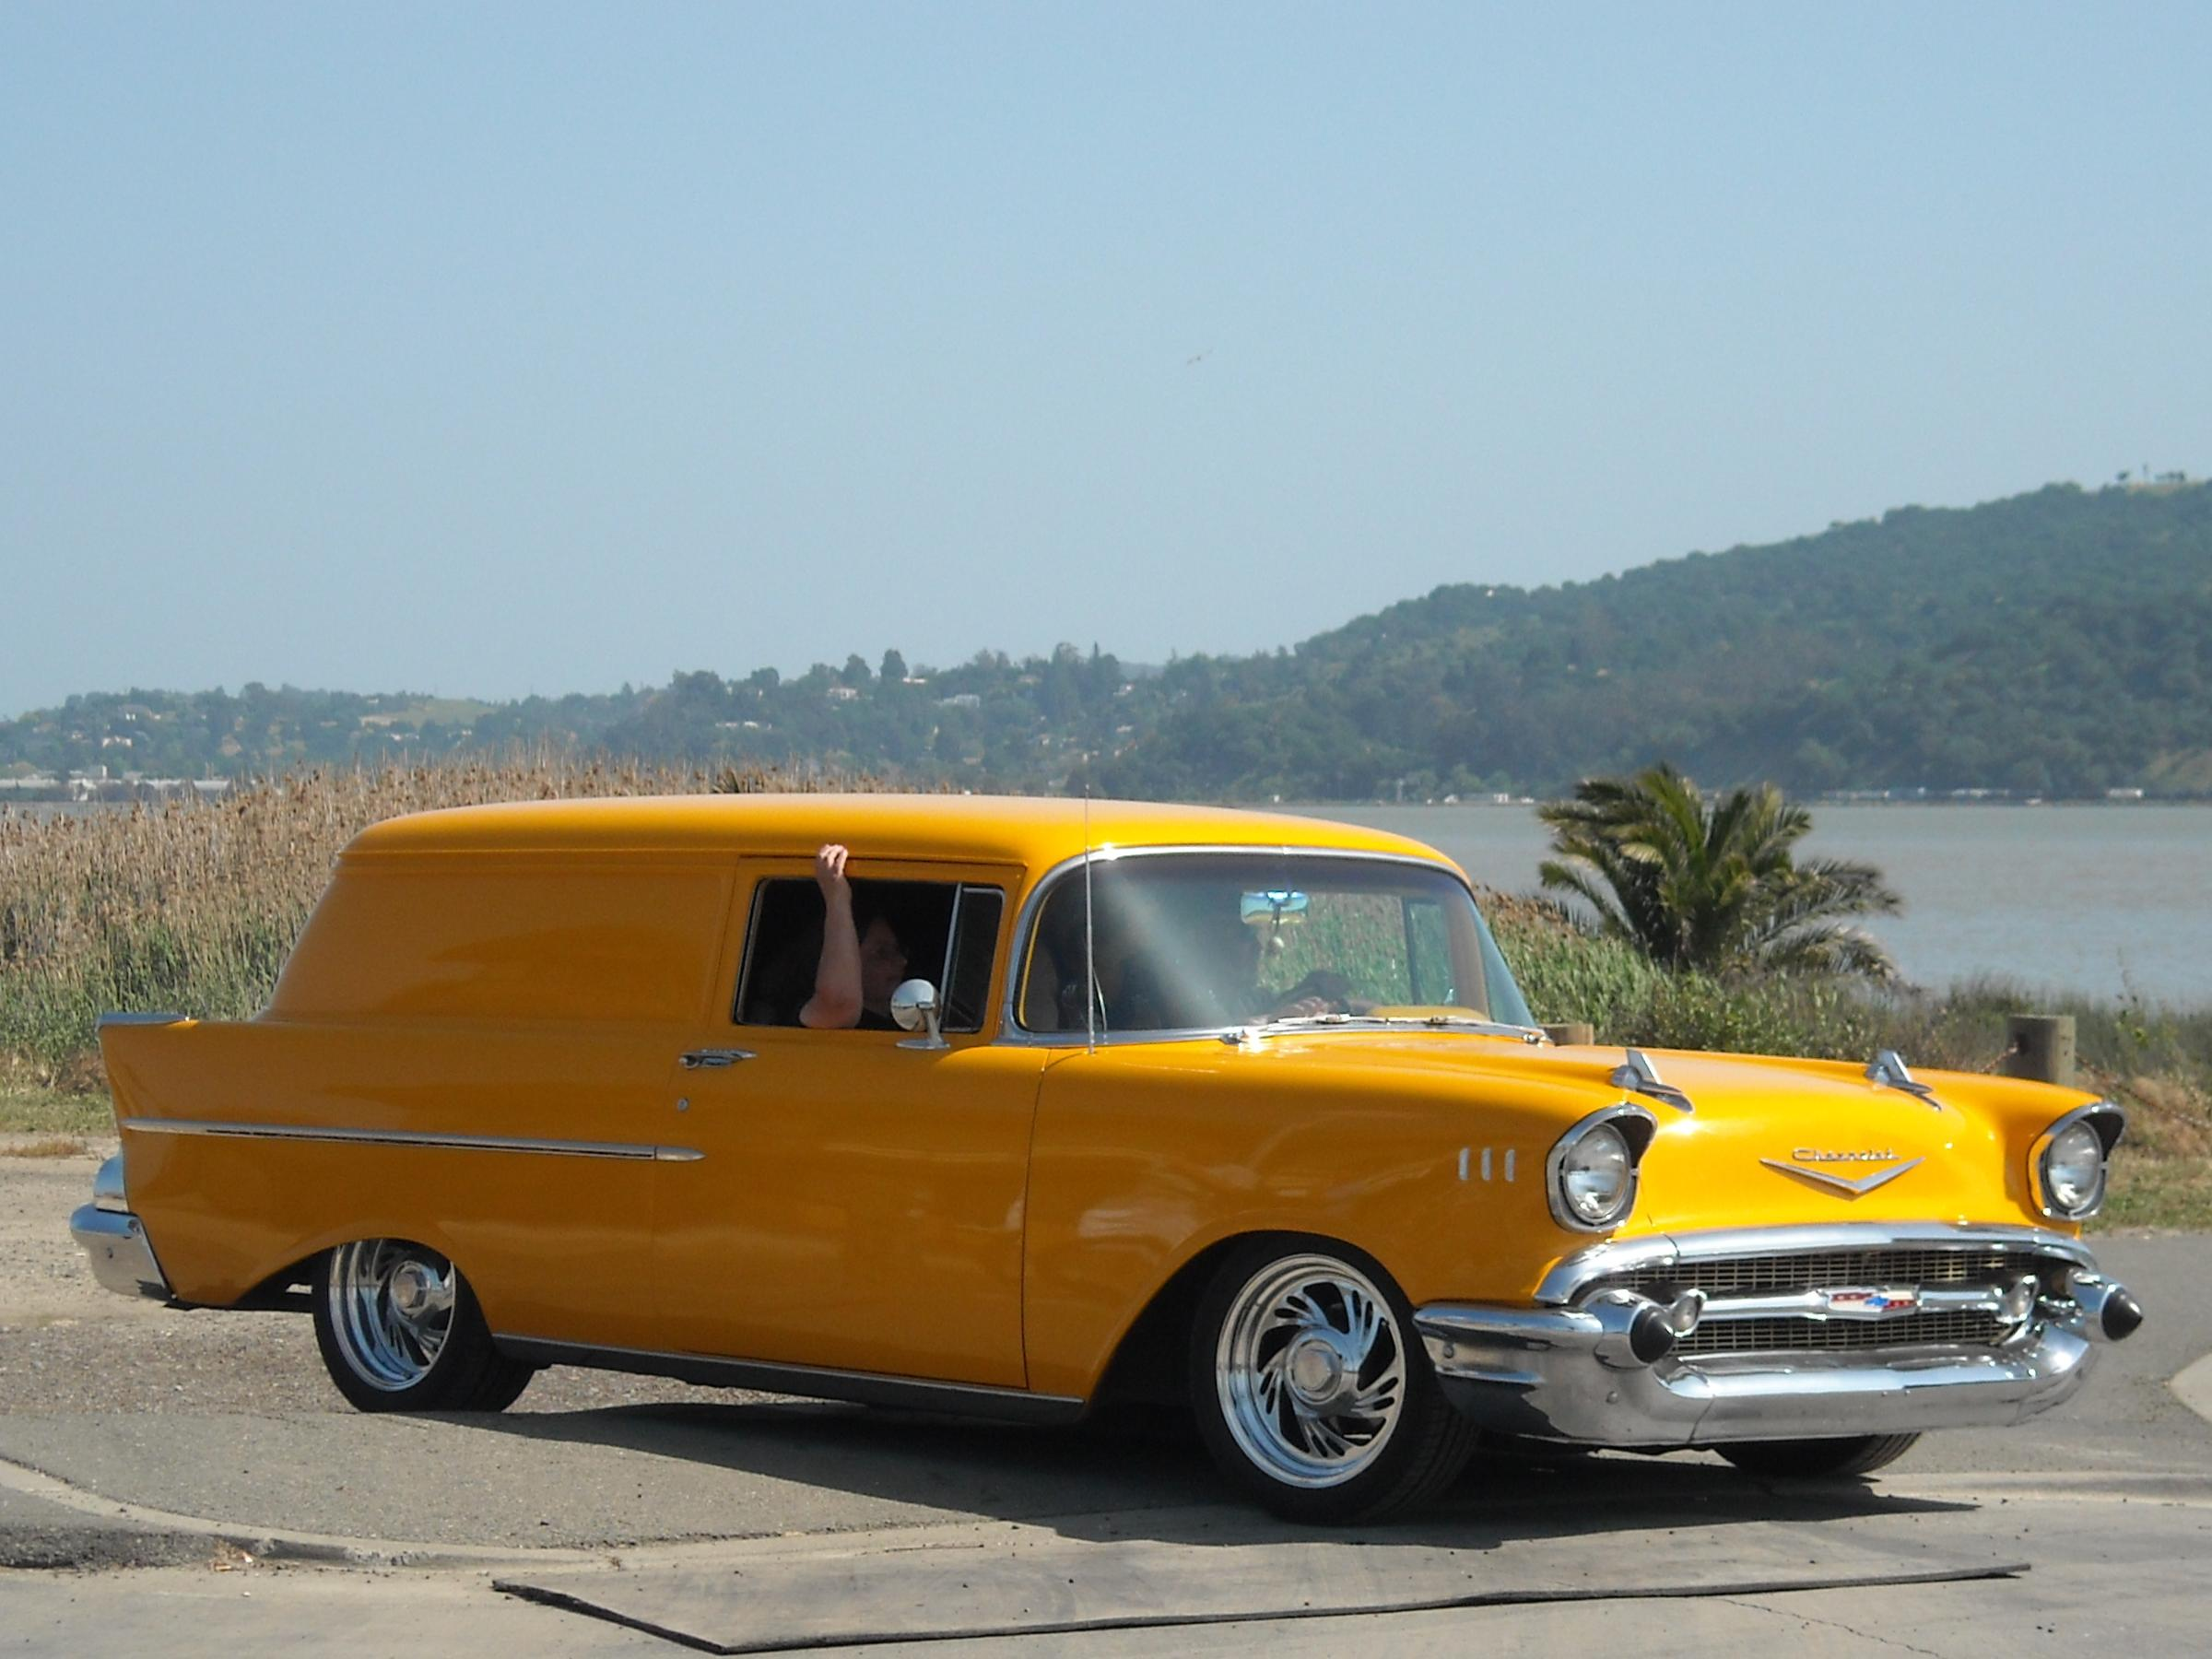 1957 Chevrolet 210 Sedan Delivery (Custom) 2 | Flickr - Photo Sharing!